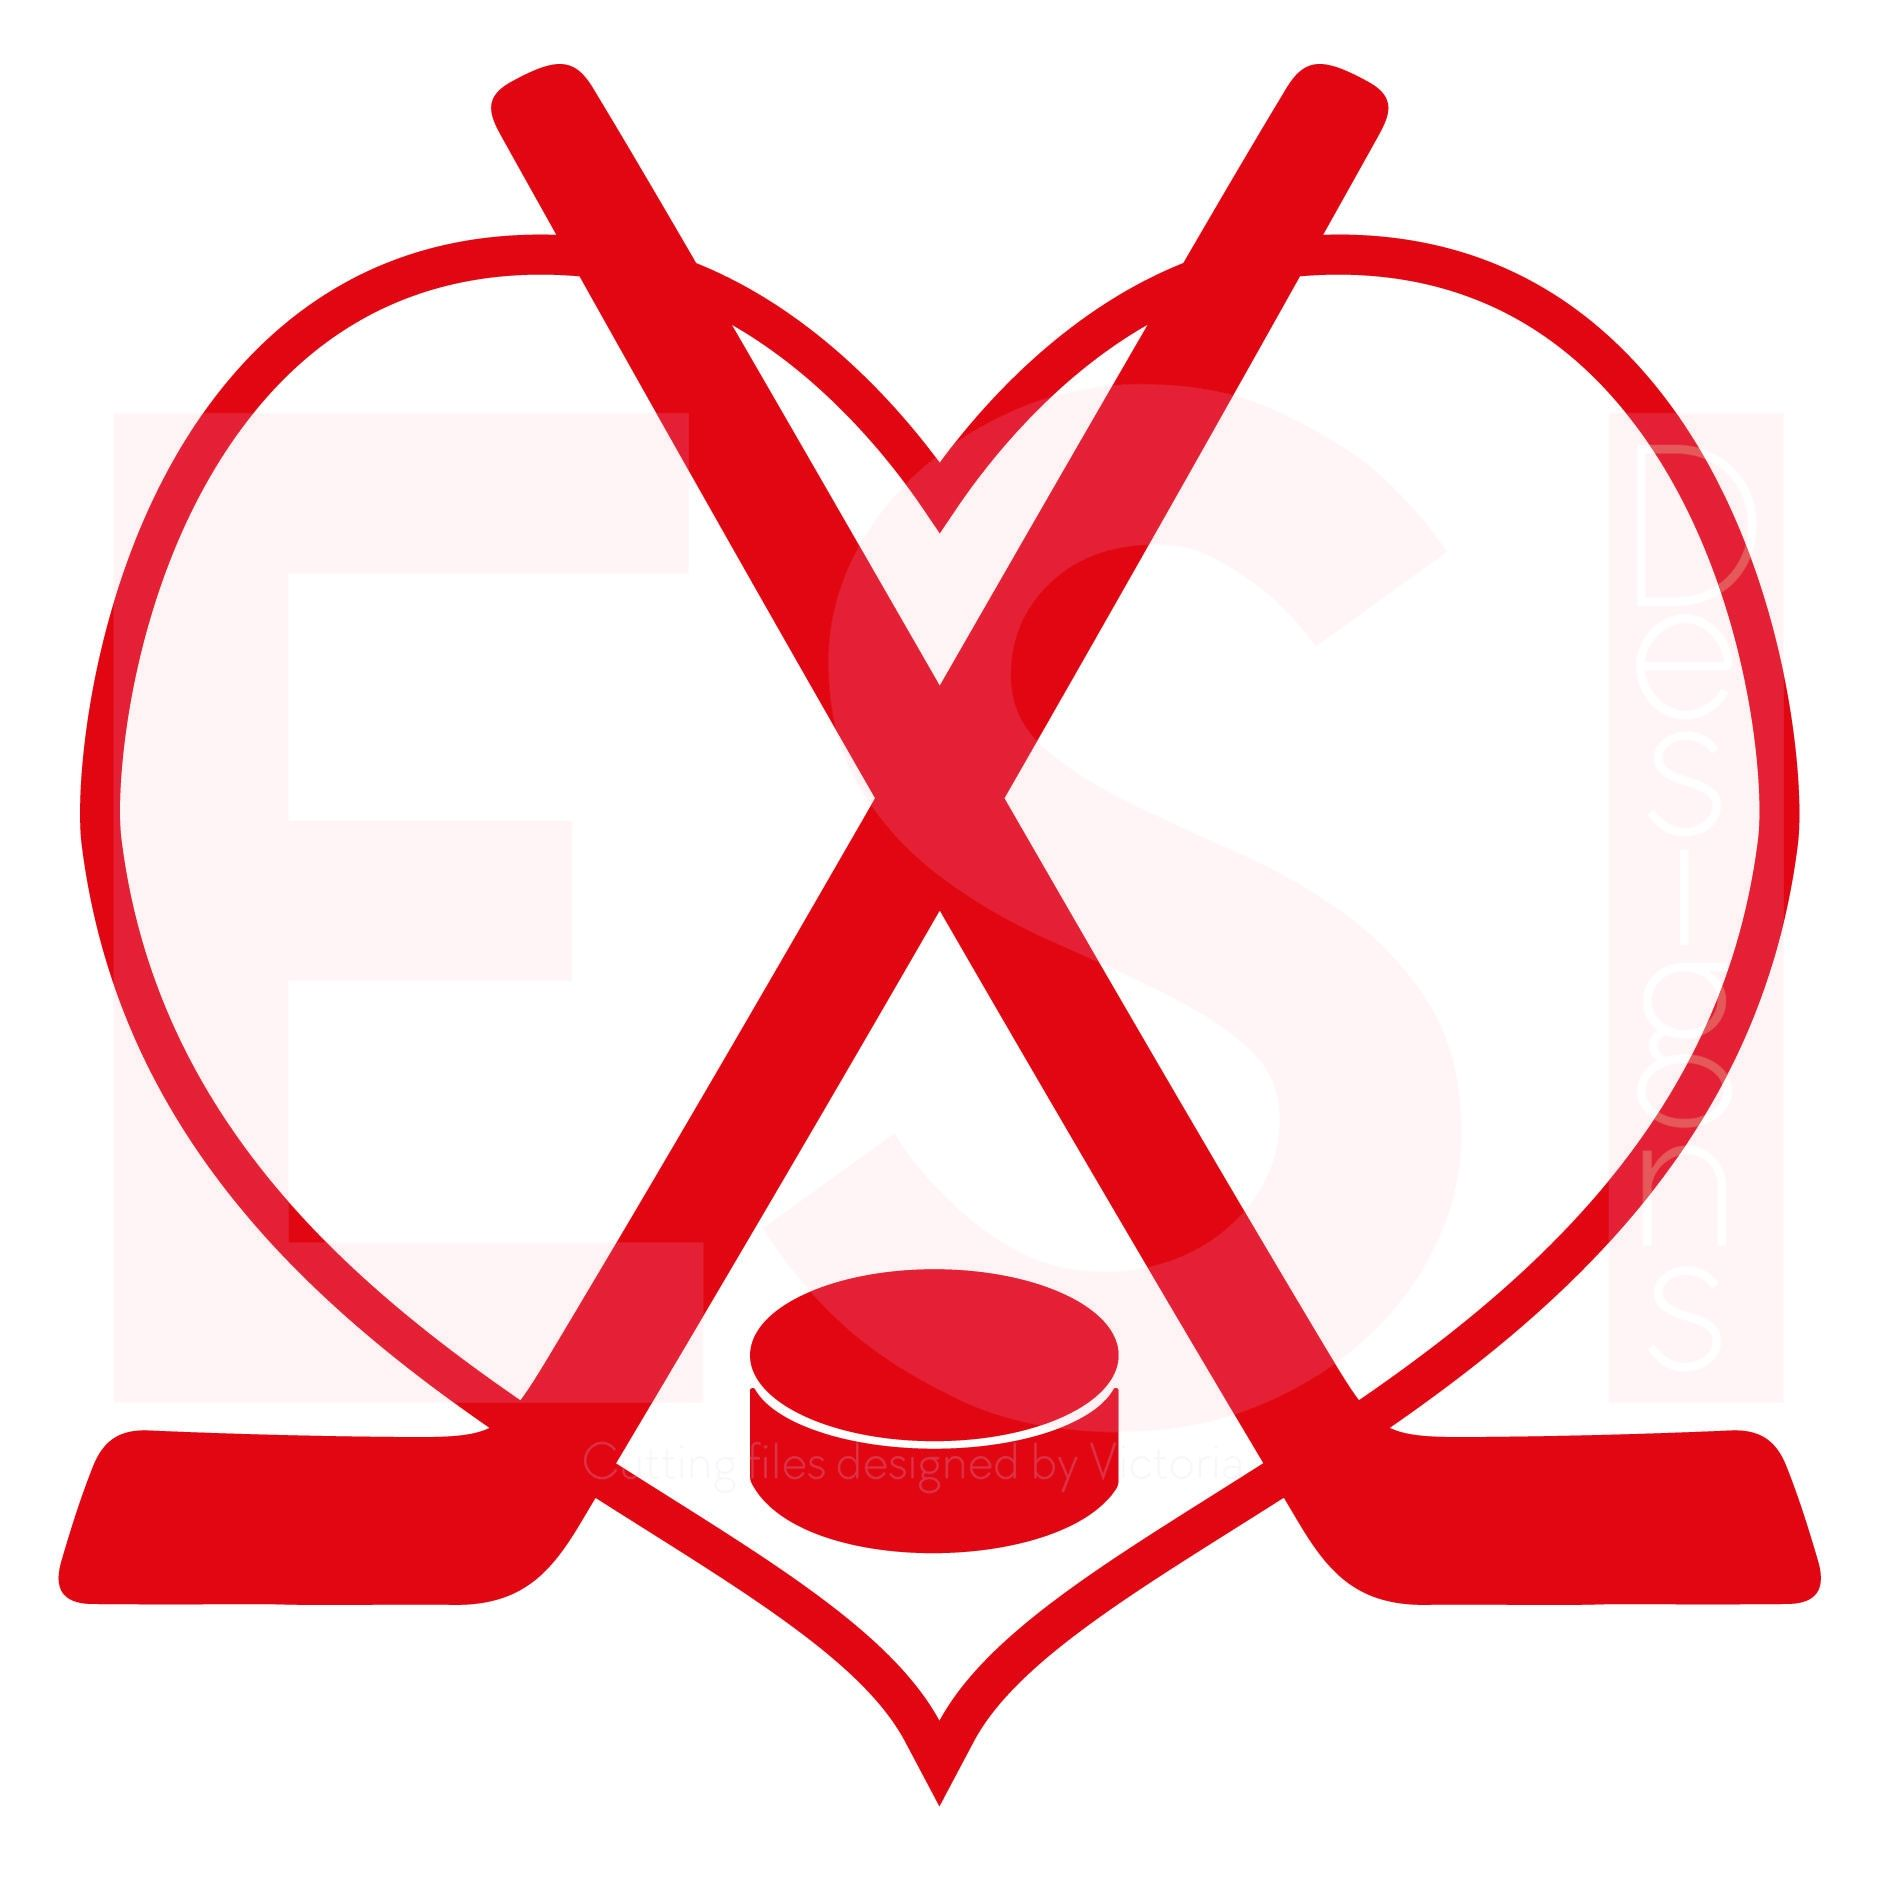 1879x1879 Hockey Sticks, Puck With Heart. Digital Cutting Files